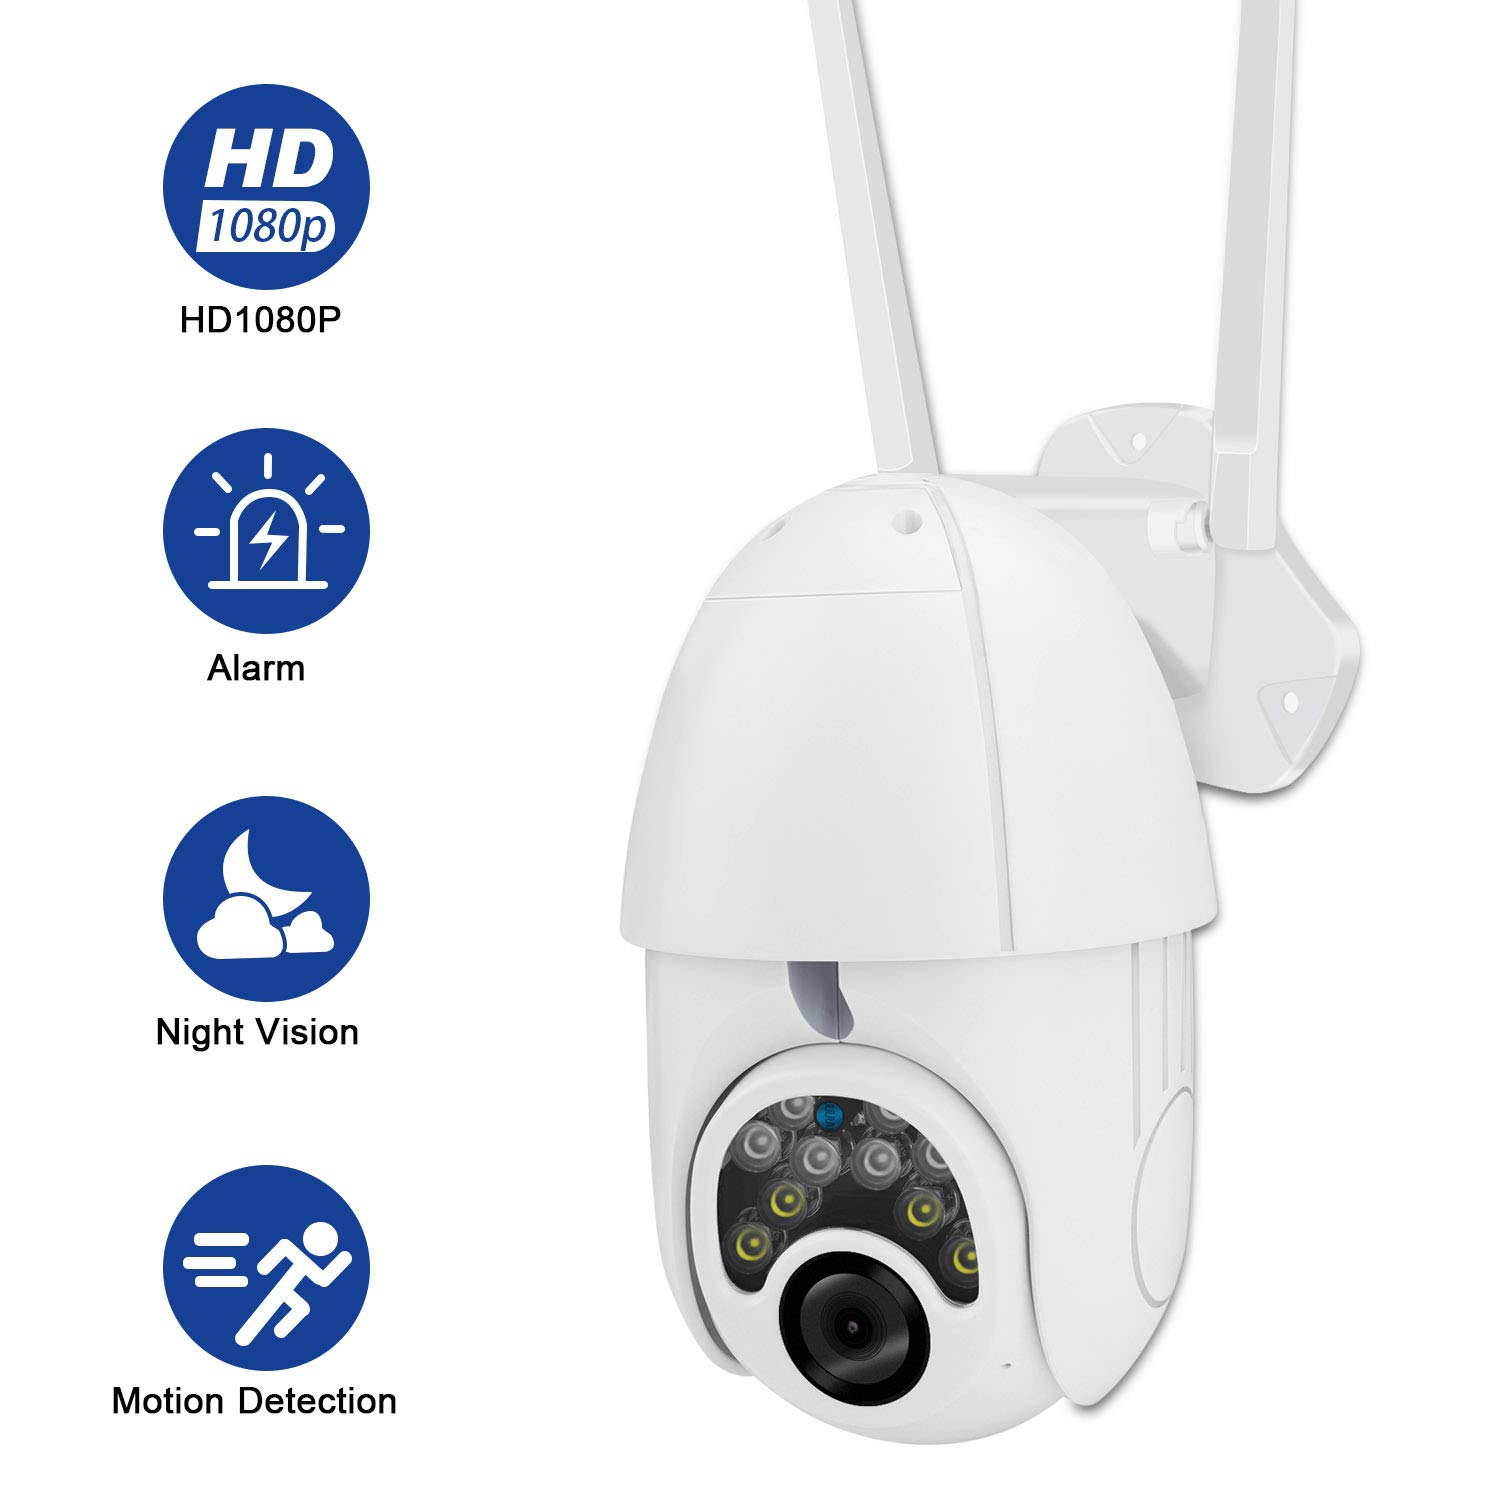 Outdoor PTZ WiFi Wireless IP Home Security Camera 2MP WiFi 1080P IP66 Waterproof HD Night Vision with Motion Sensor 2-Way Audio Support TF Card/Cloud Storage Camera